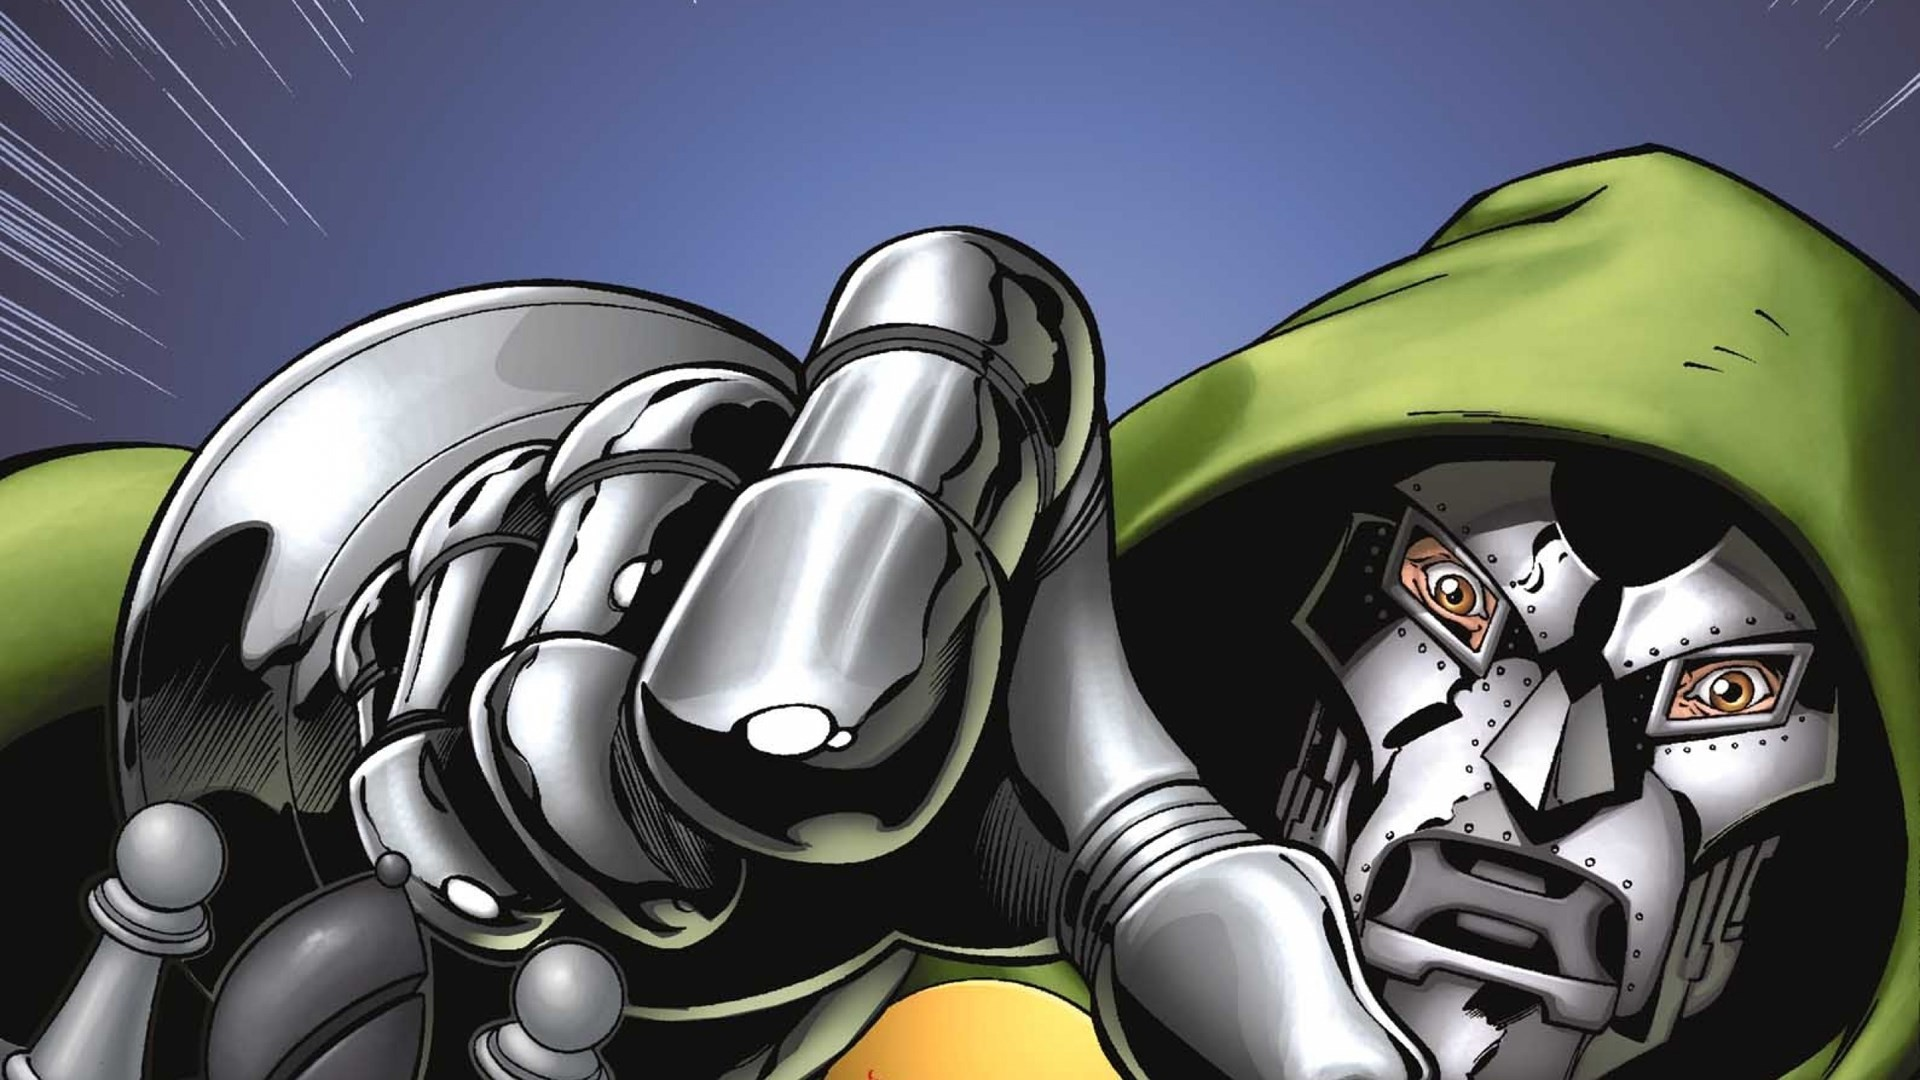 1920x1080 2017-03-20 - doctor doom wallpaper - Full HD Backgrounds, #1886273 · Hd BackgroundsFantastic  Four1990sComic ...